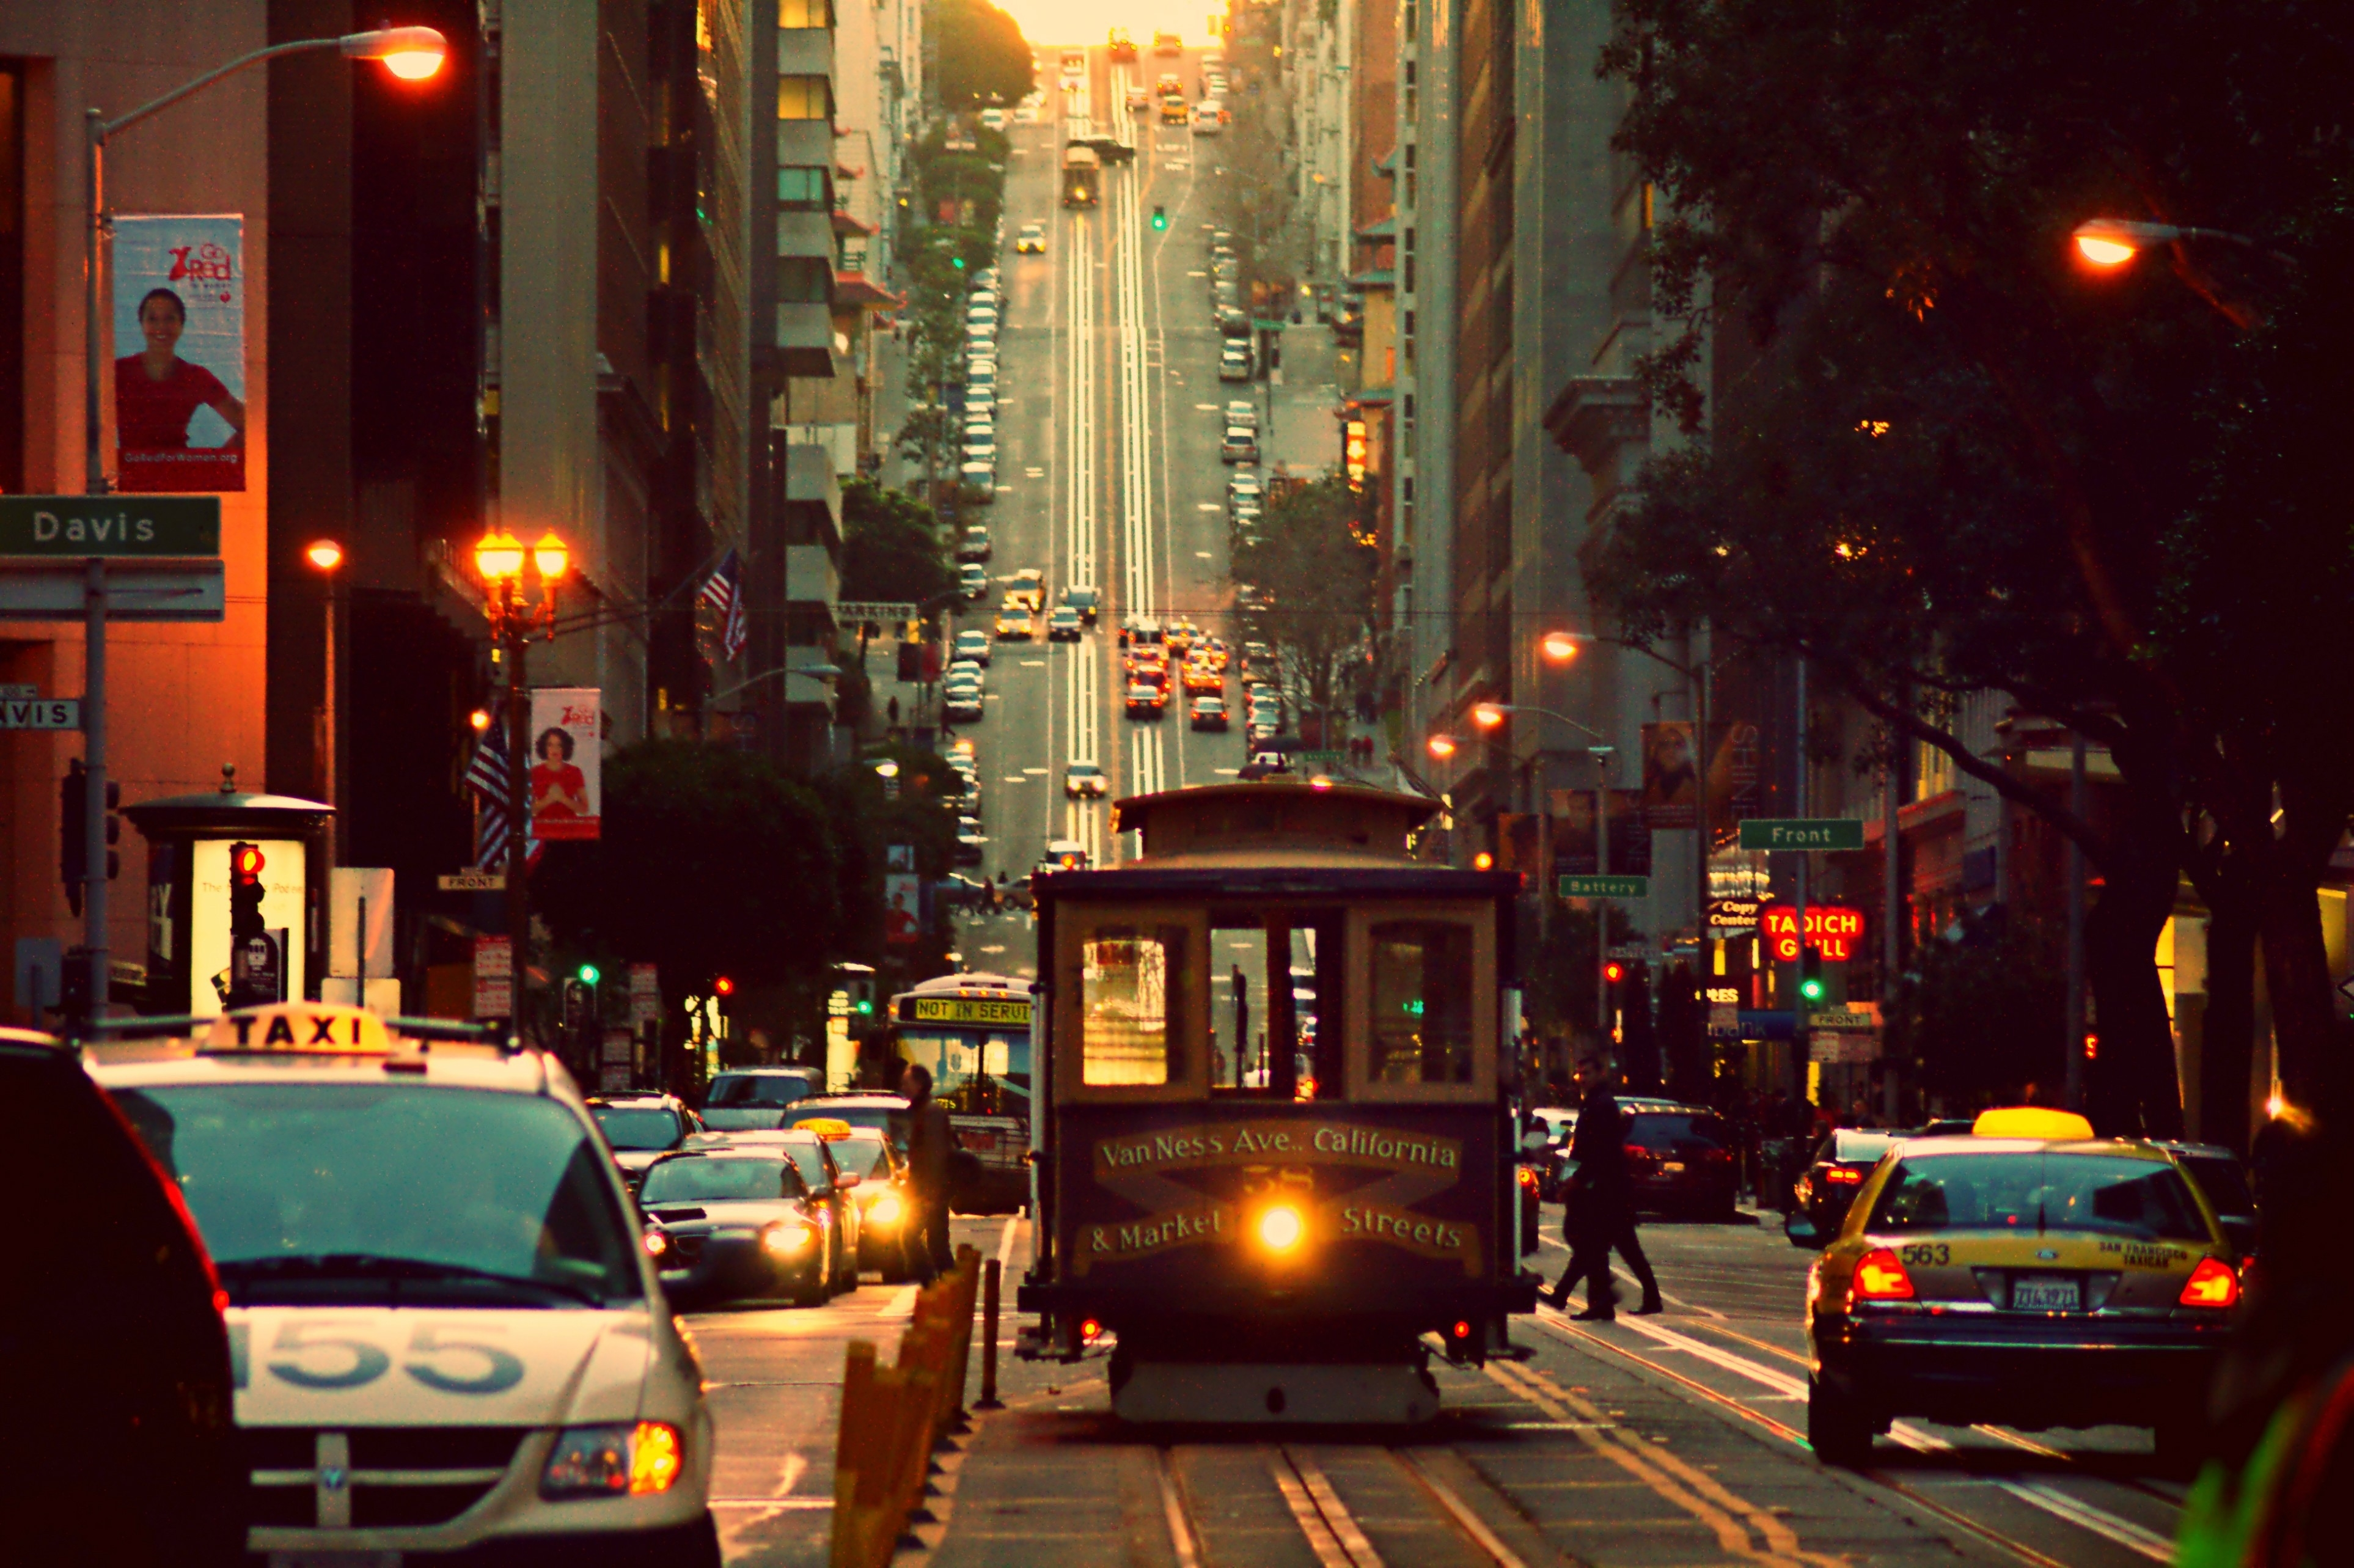 tram on a street in san francisco wallpapers and images - wallpapers